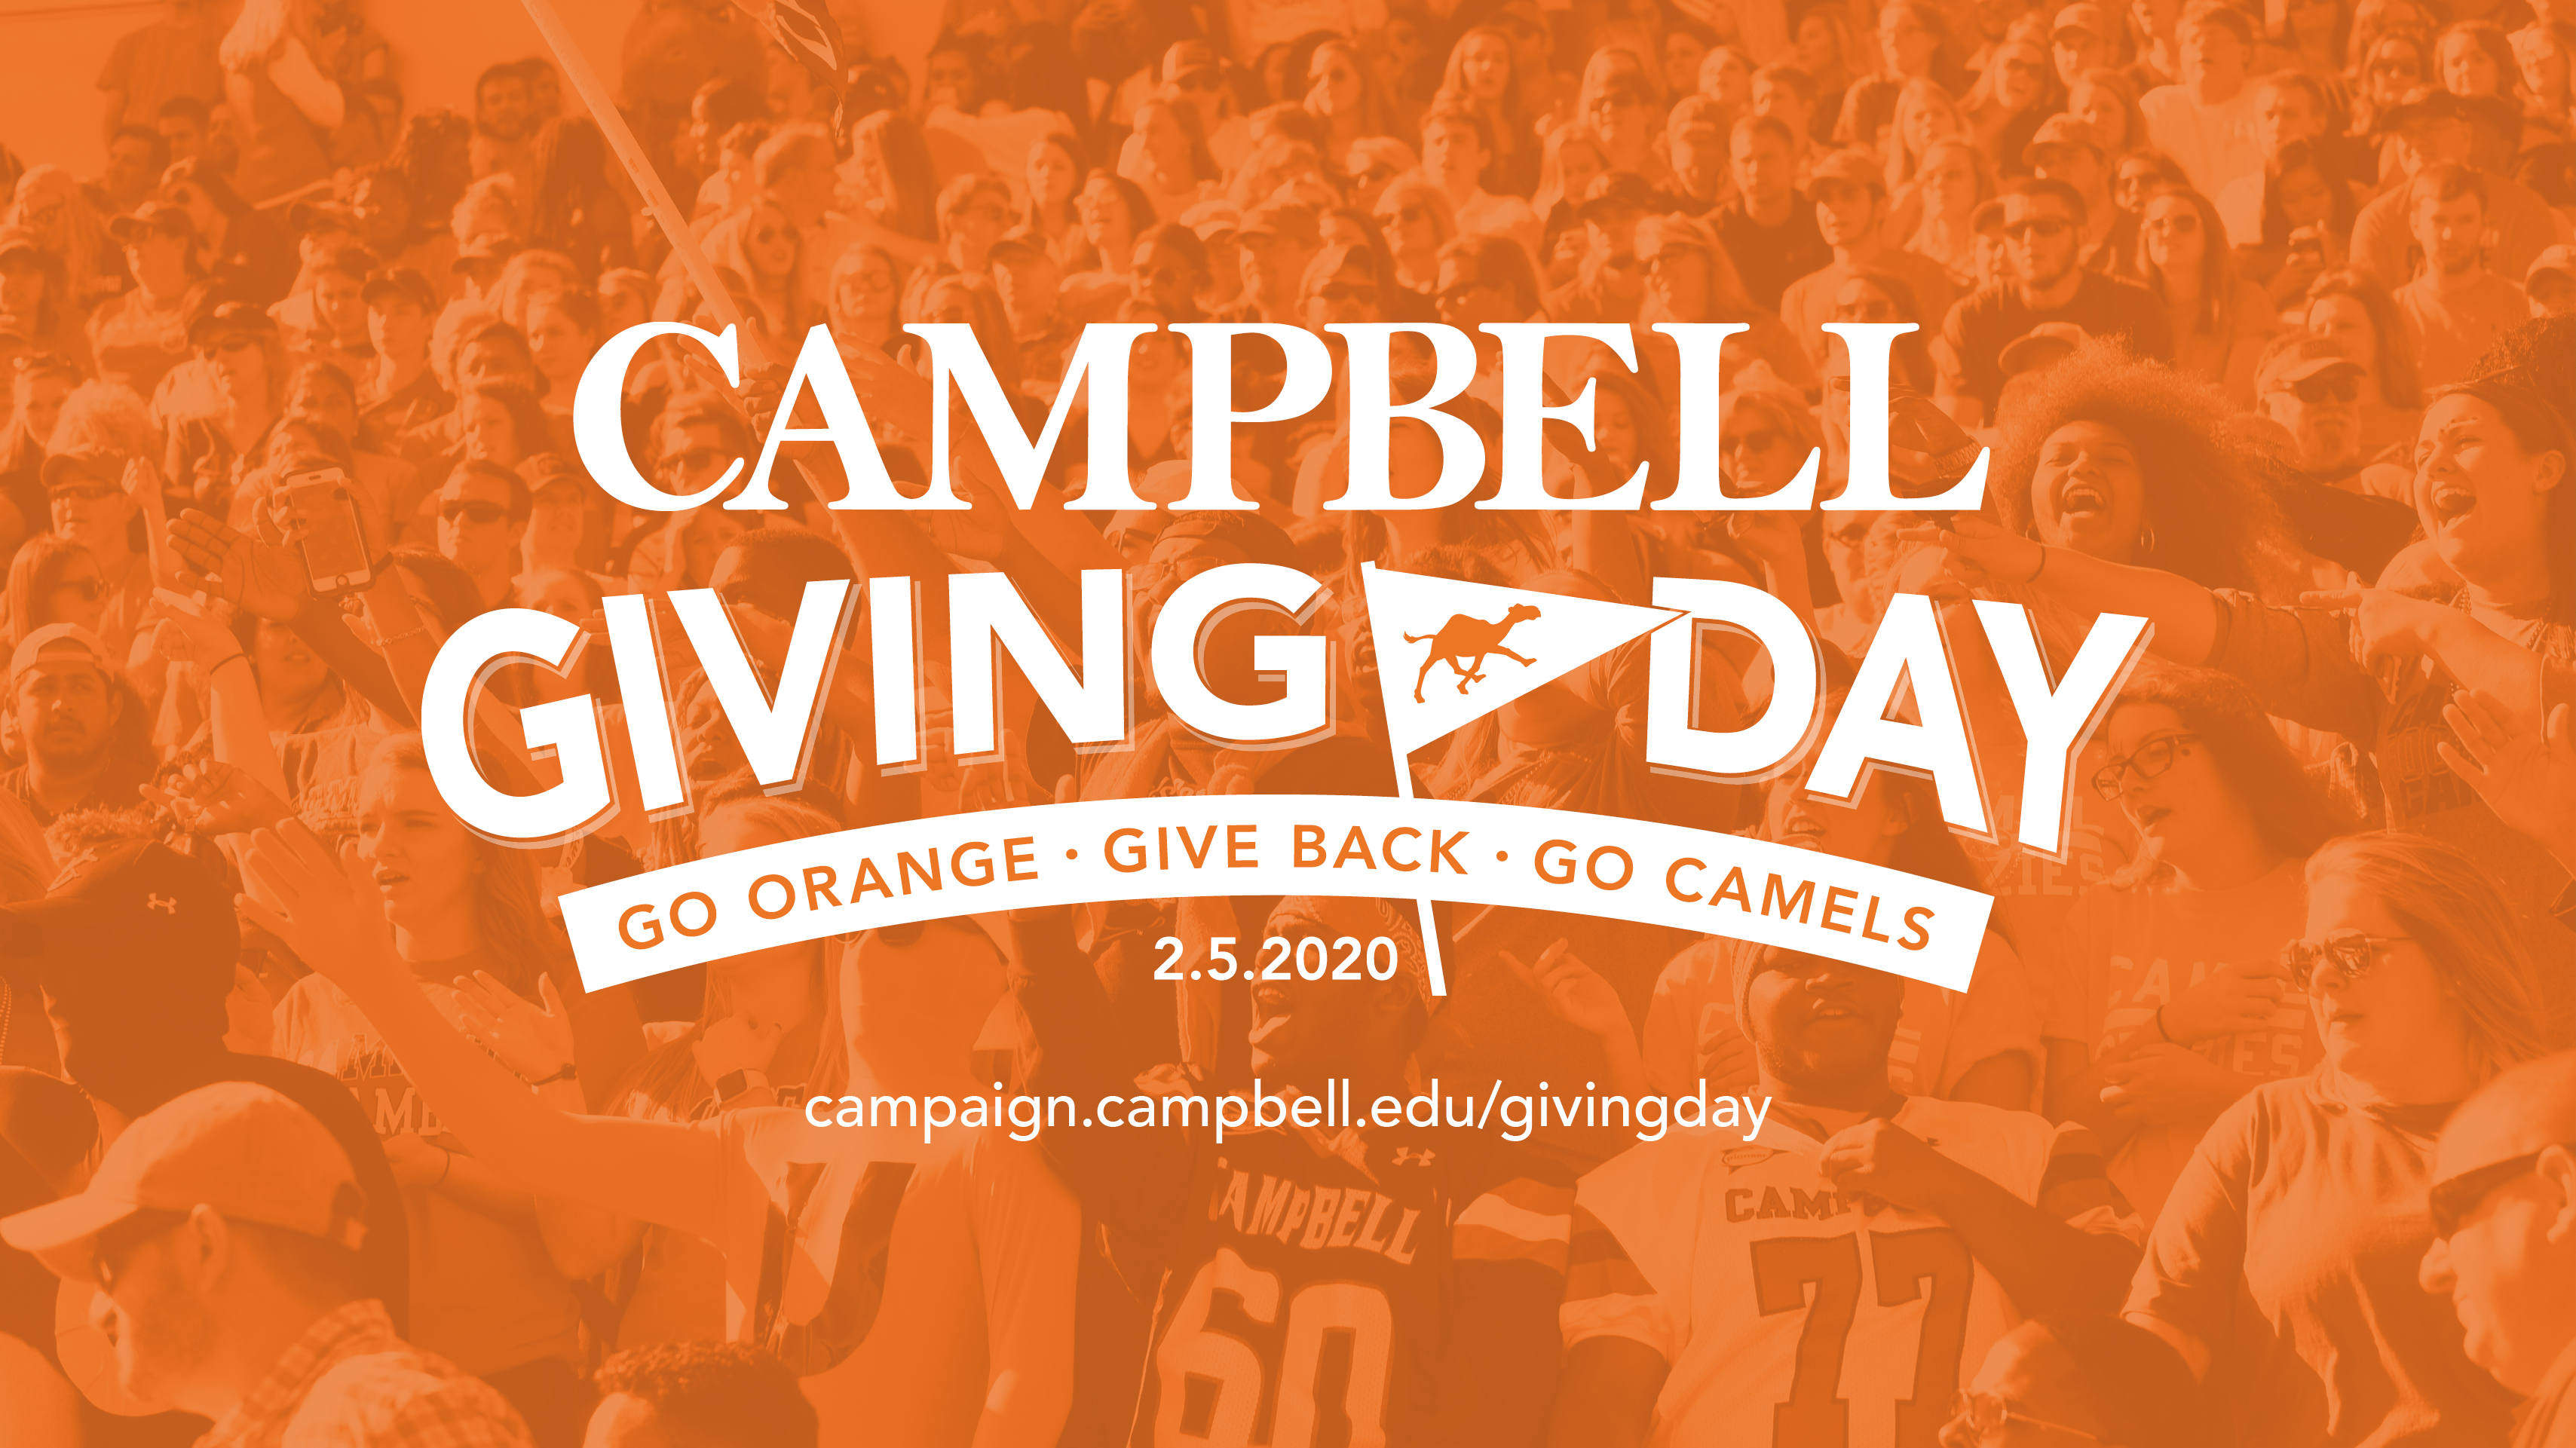 Giving Day social media cover image